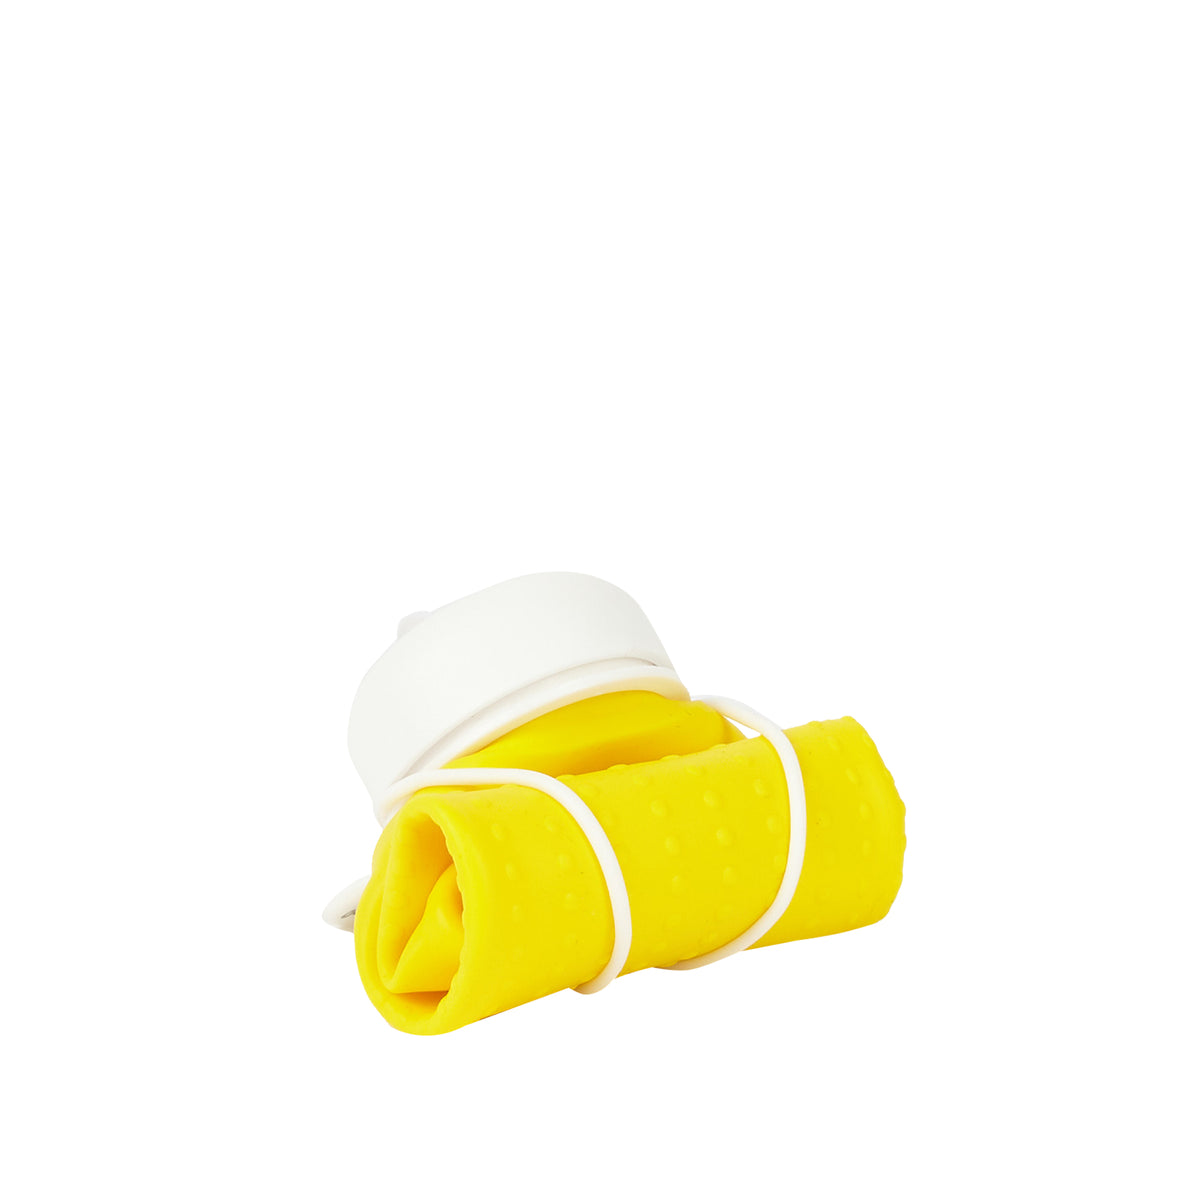 Rolla Bottle - Yellow, White Lid + White Strap - rolled